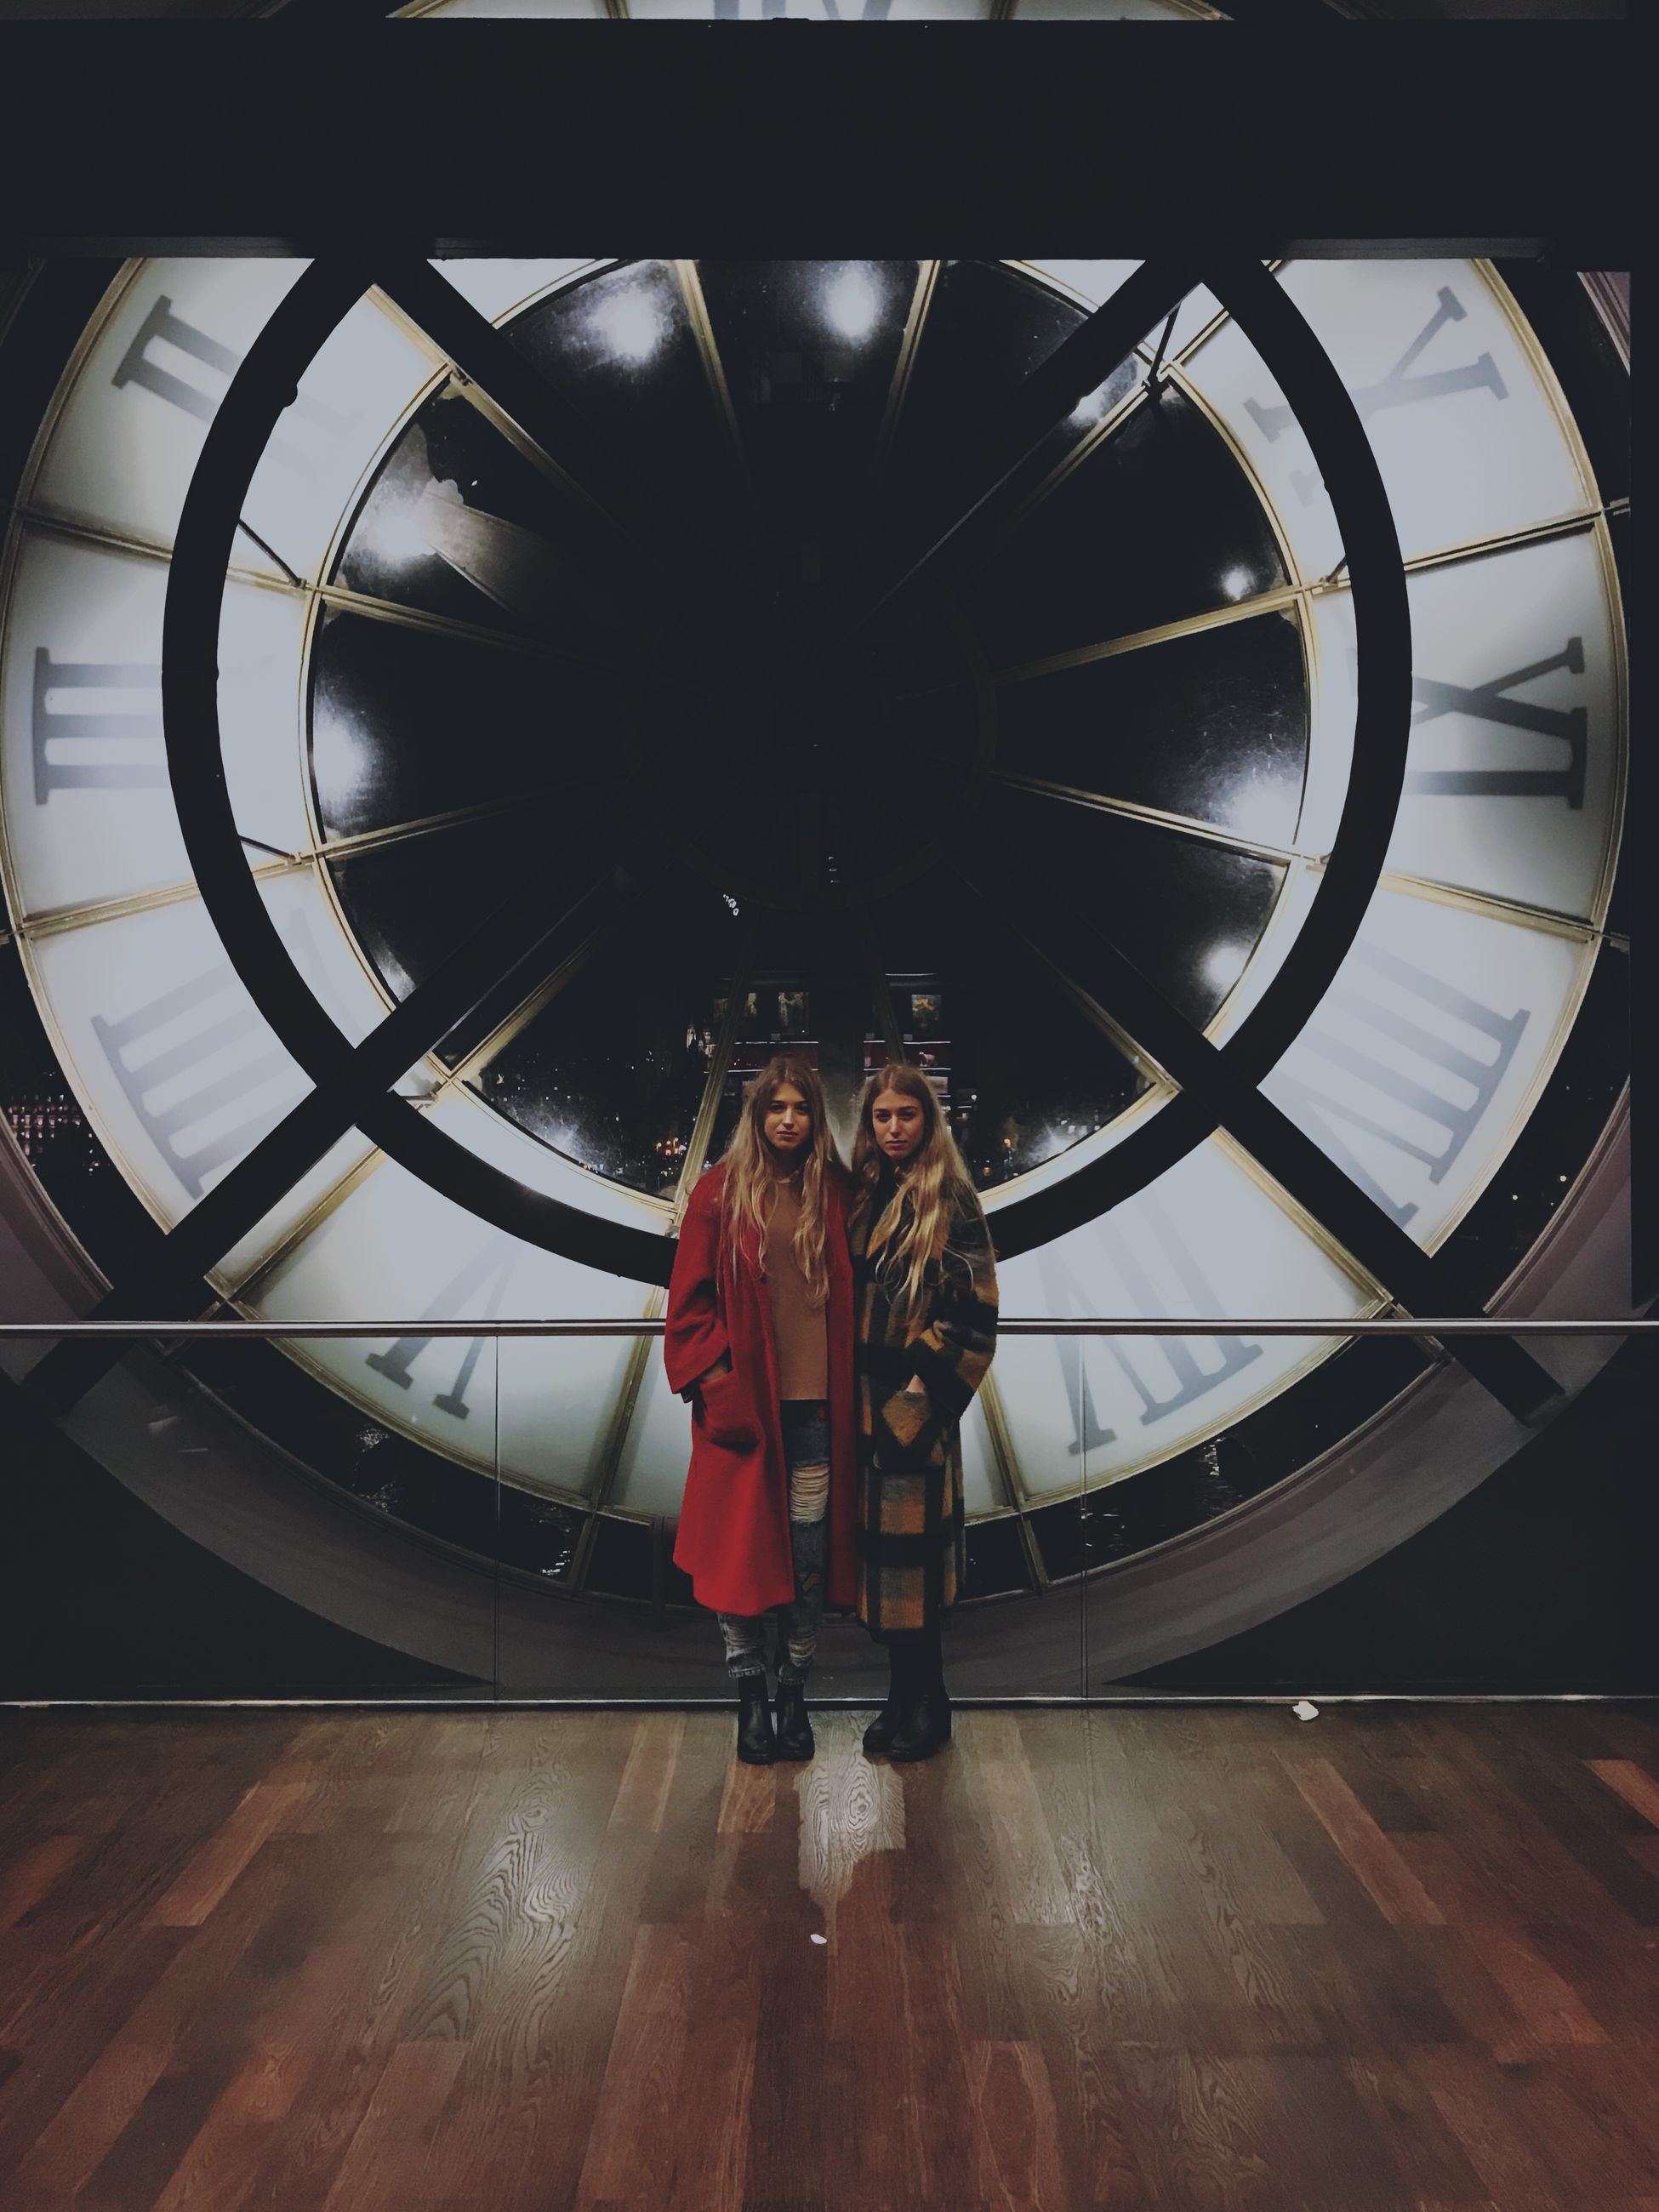 indoors, full length, real people, togetherness, clock, friendship, lifestyles, day, standing, time, young women, young adult, clock face